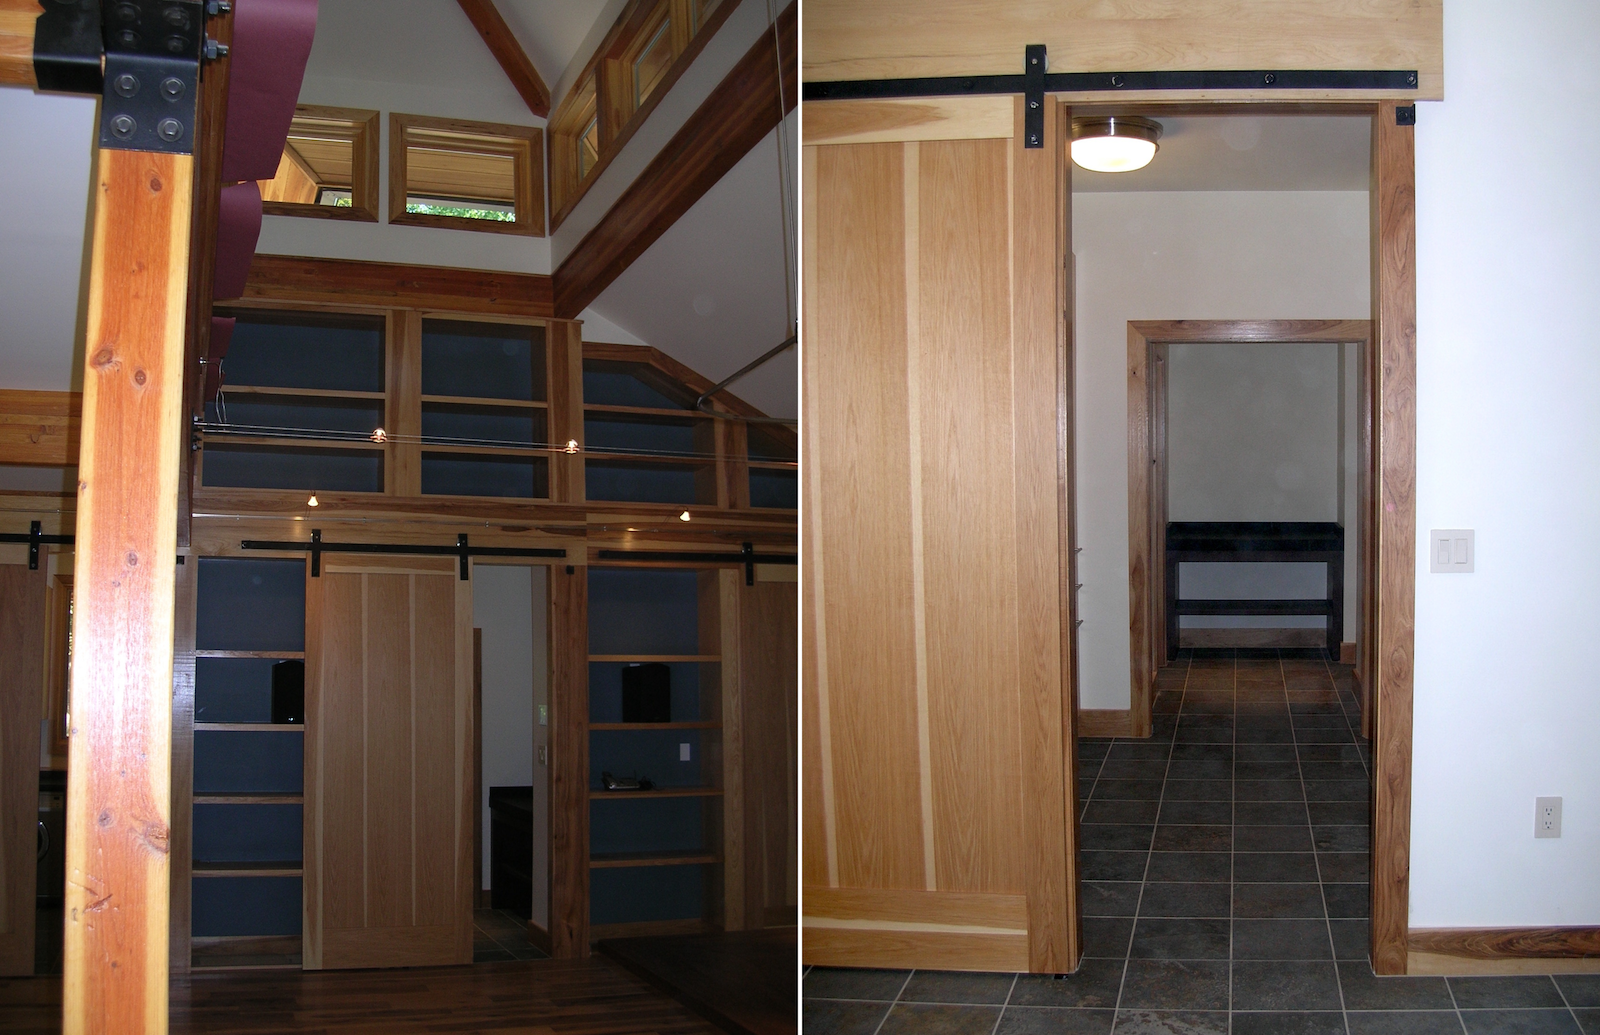 Price Inerior Built in Wood Shelving with Clerestory Above and Barn Door.png